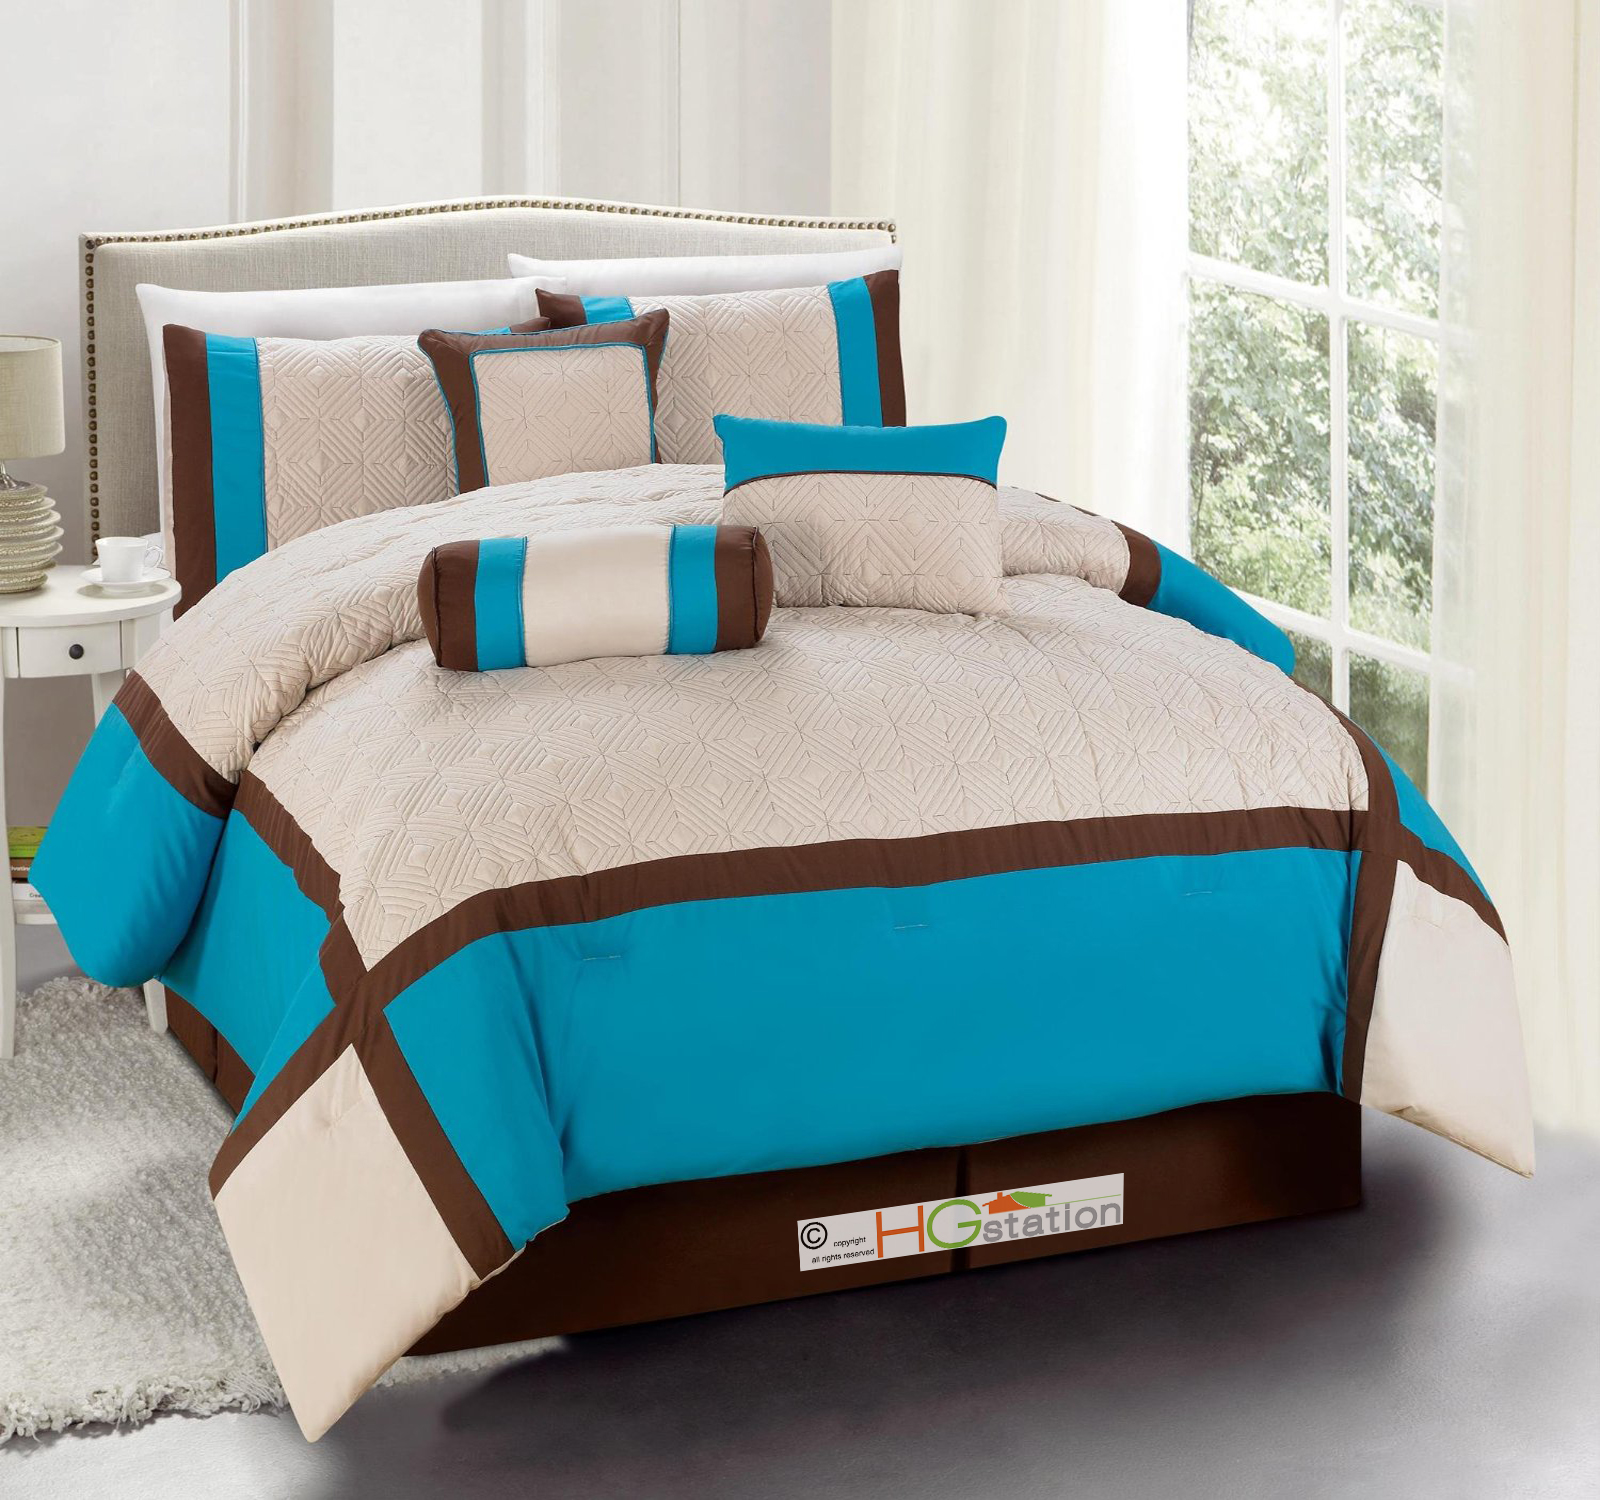 diamond square patchwork comforter curtain set turquoise brown queen